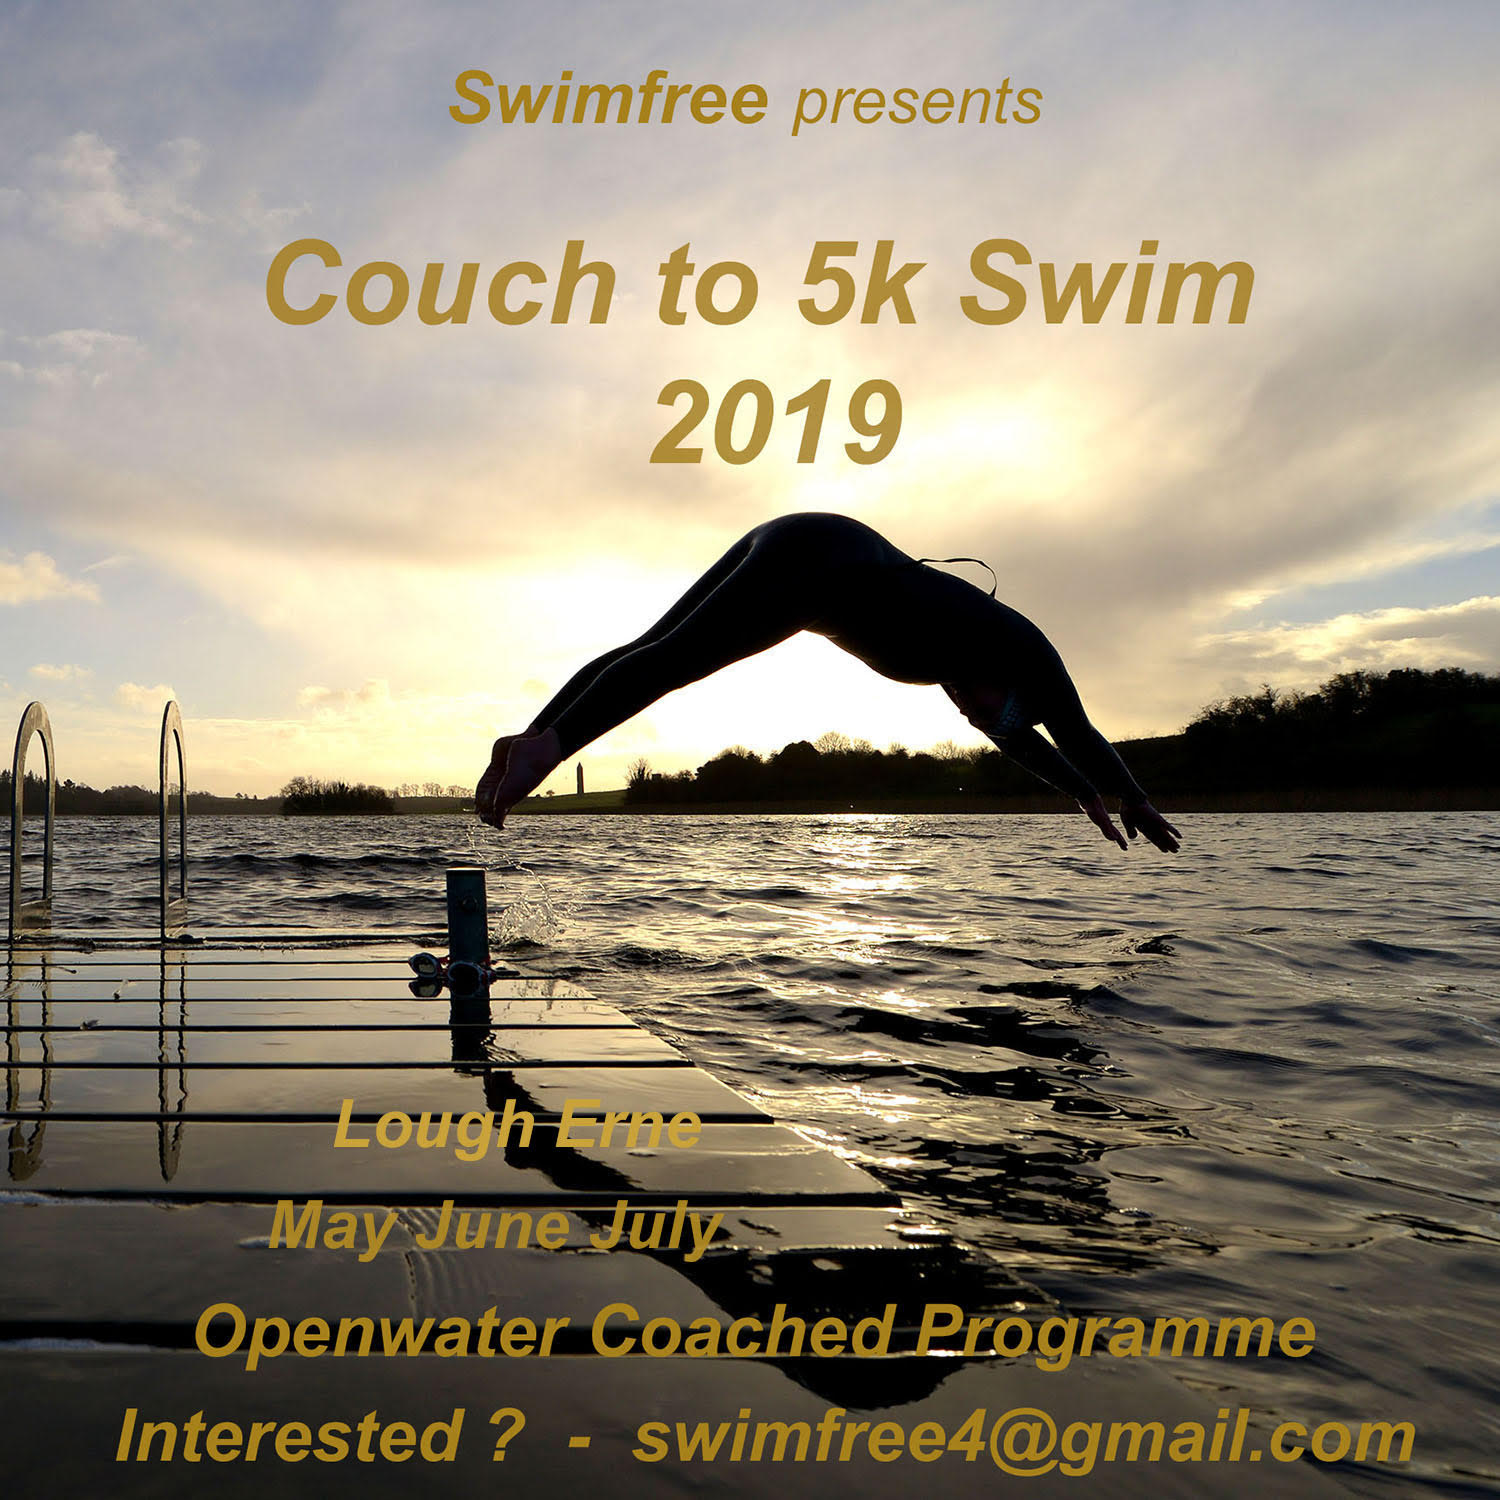 couch to 5k-2019